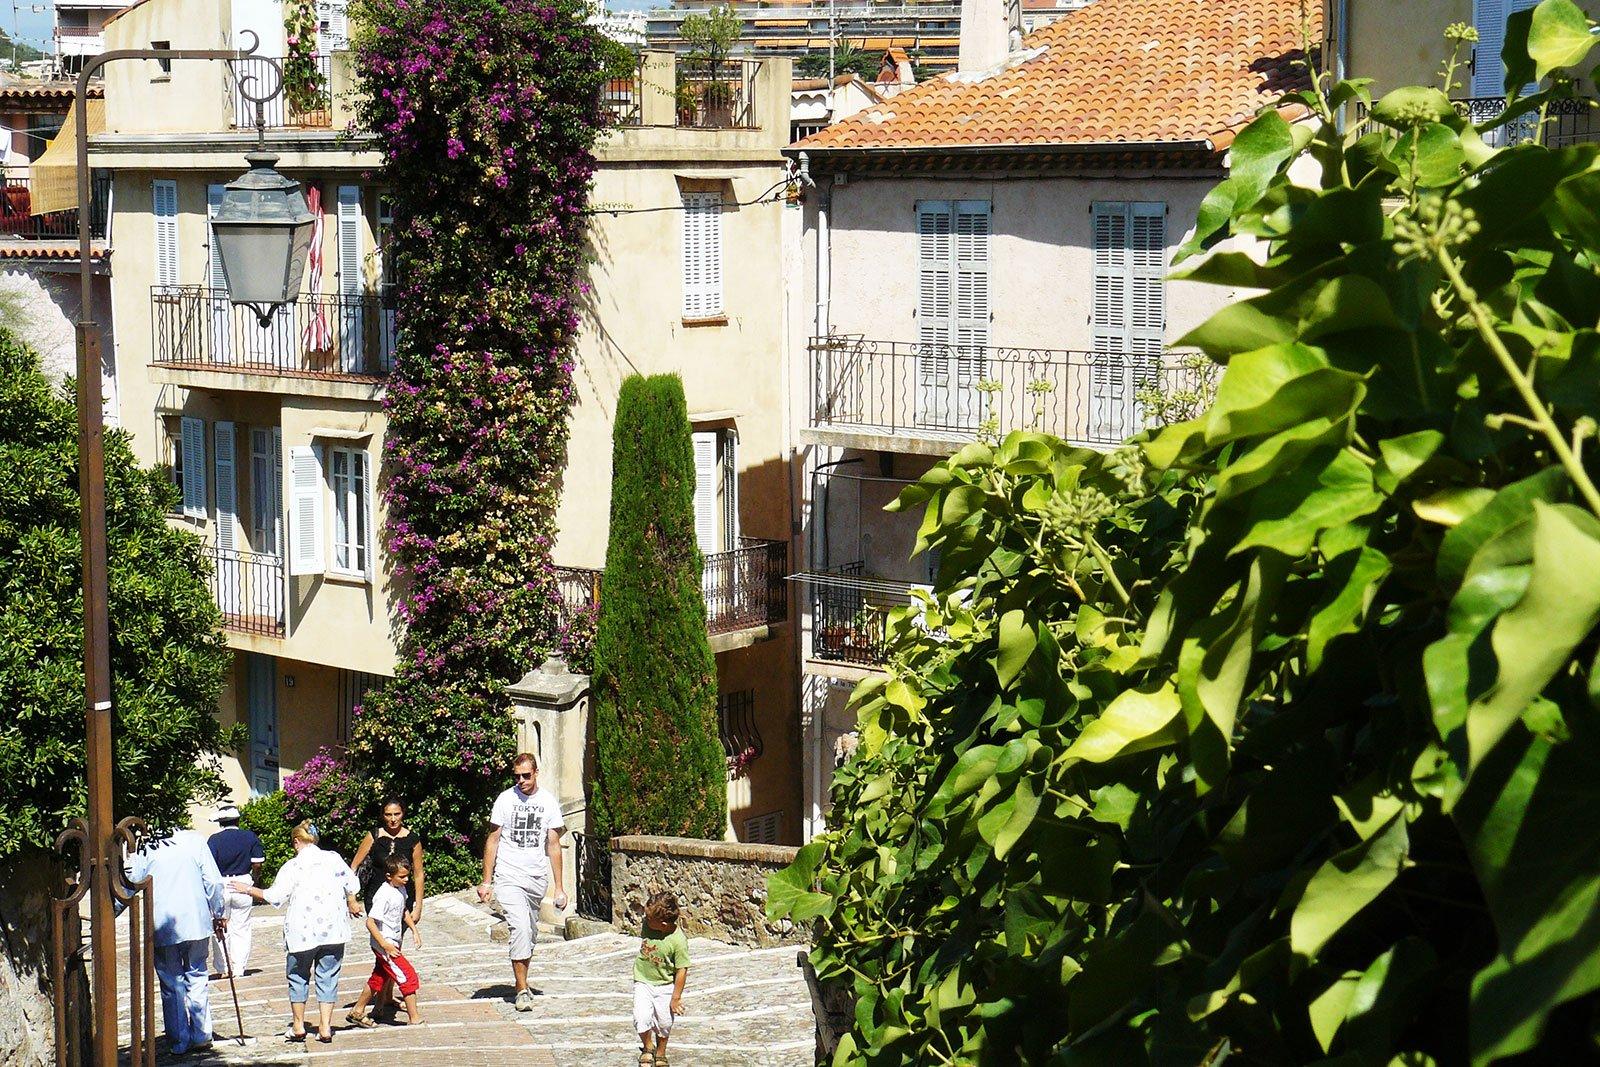 How to walk through the Old City in Cannes